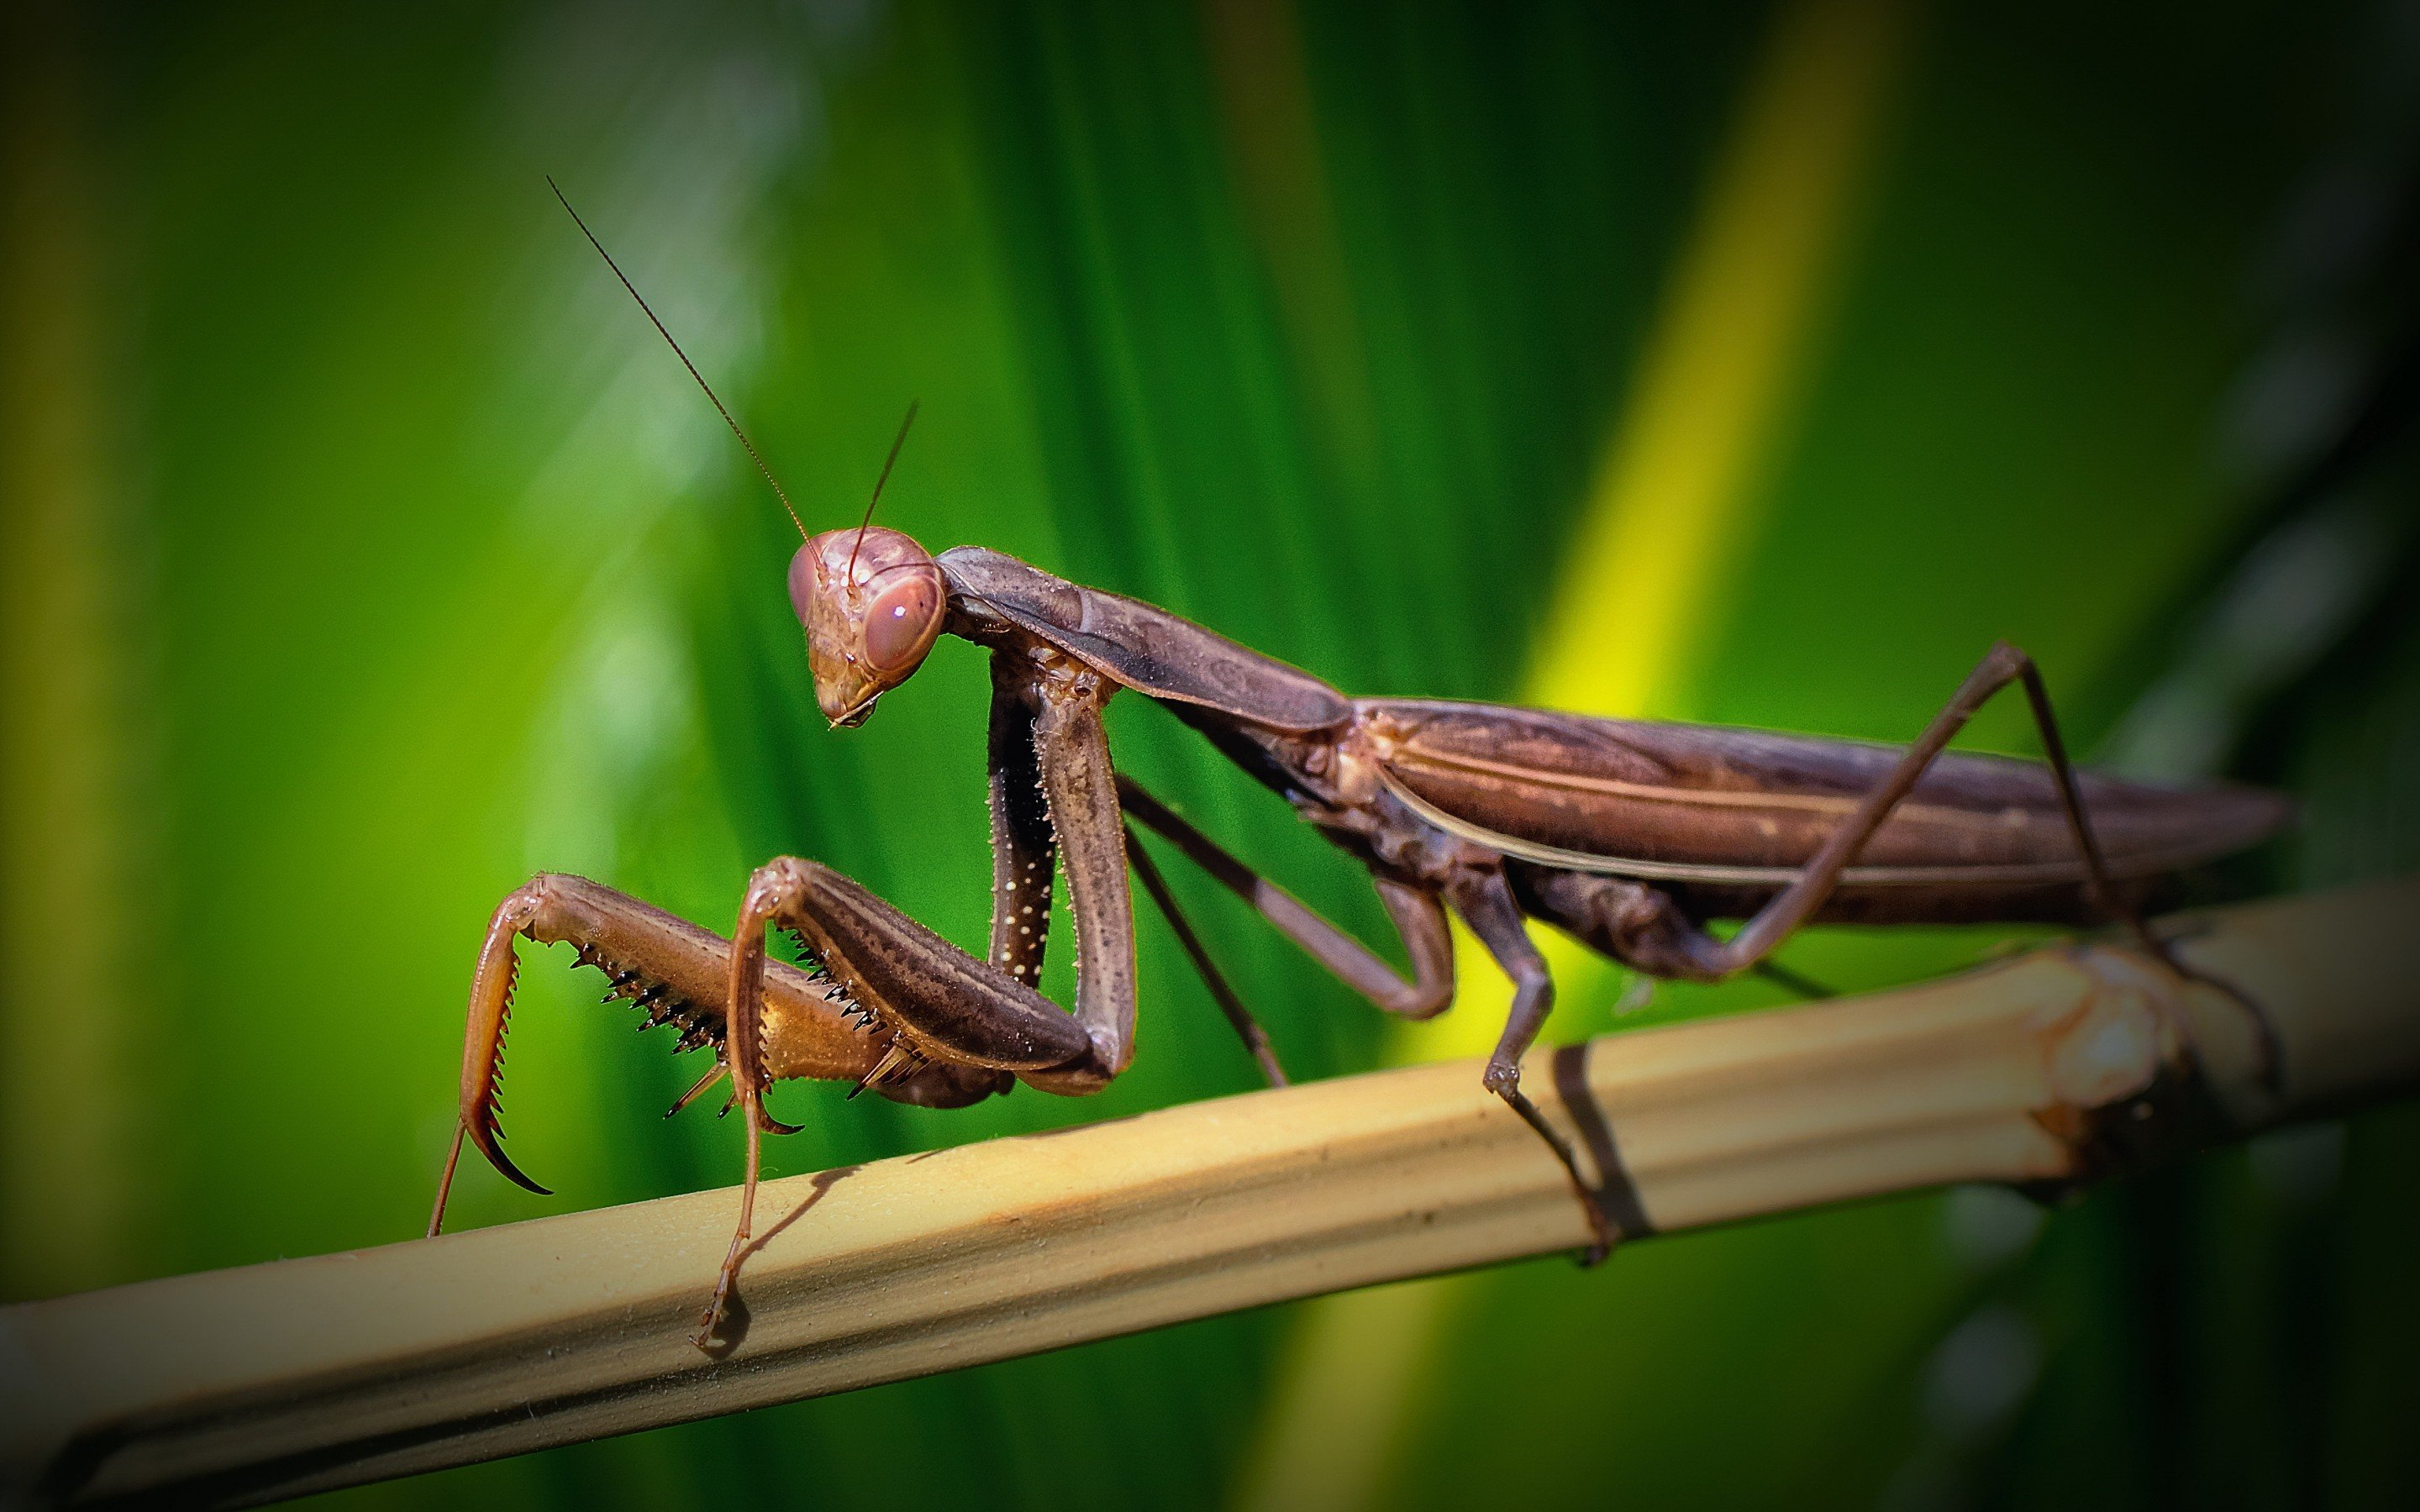 download hd 2880x1800 praying mantis desktop wallpaper id:156413 for